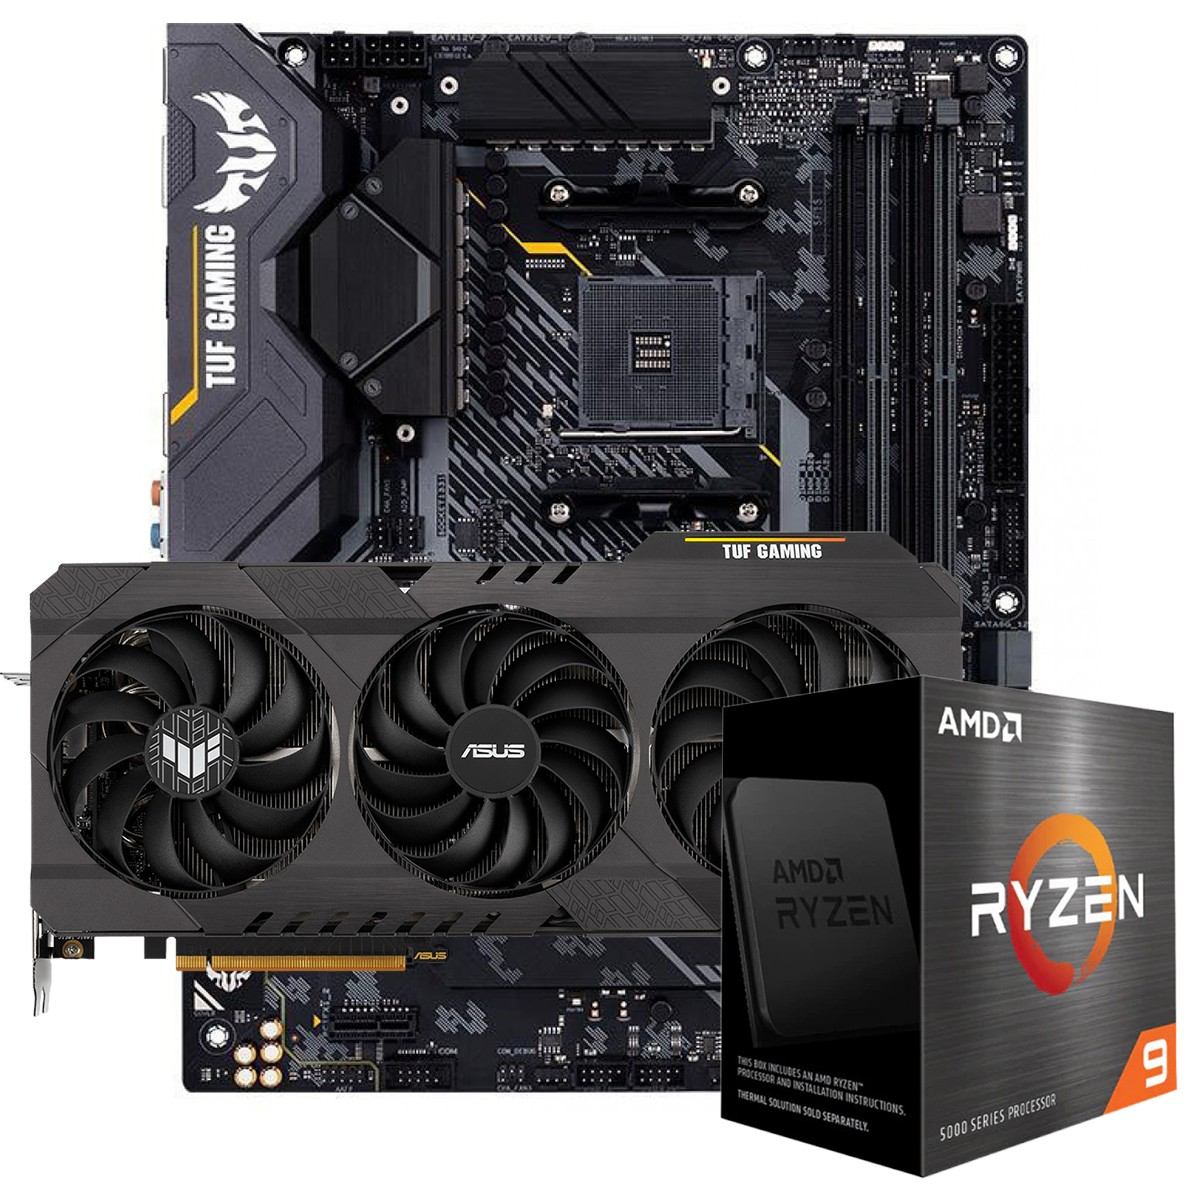 Kit Upgrade ASUS TUF Gaming Radeon RX 6700 XT OC + AMD Ryzen 9 5950X + ASUS TUF Gaming X570-Plus